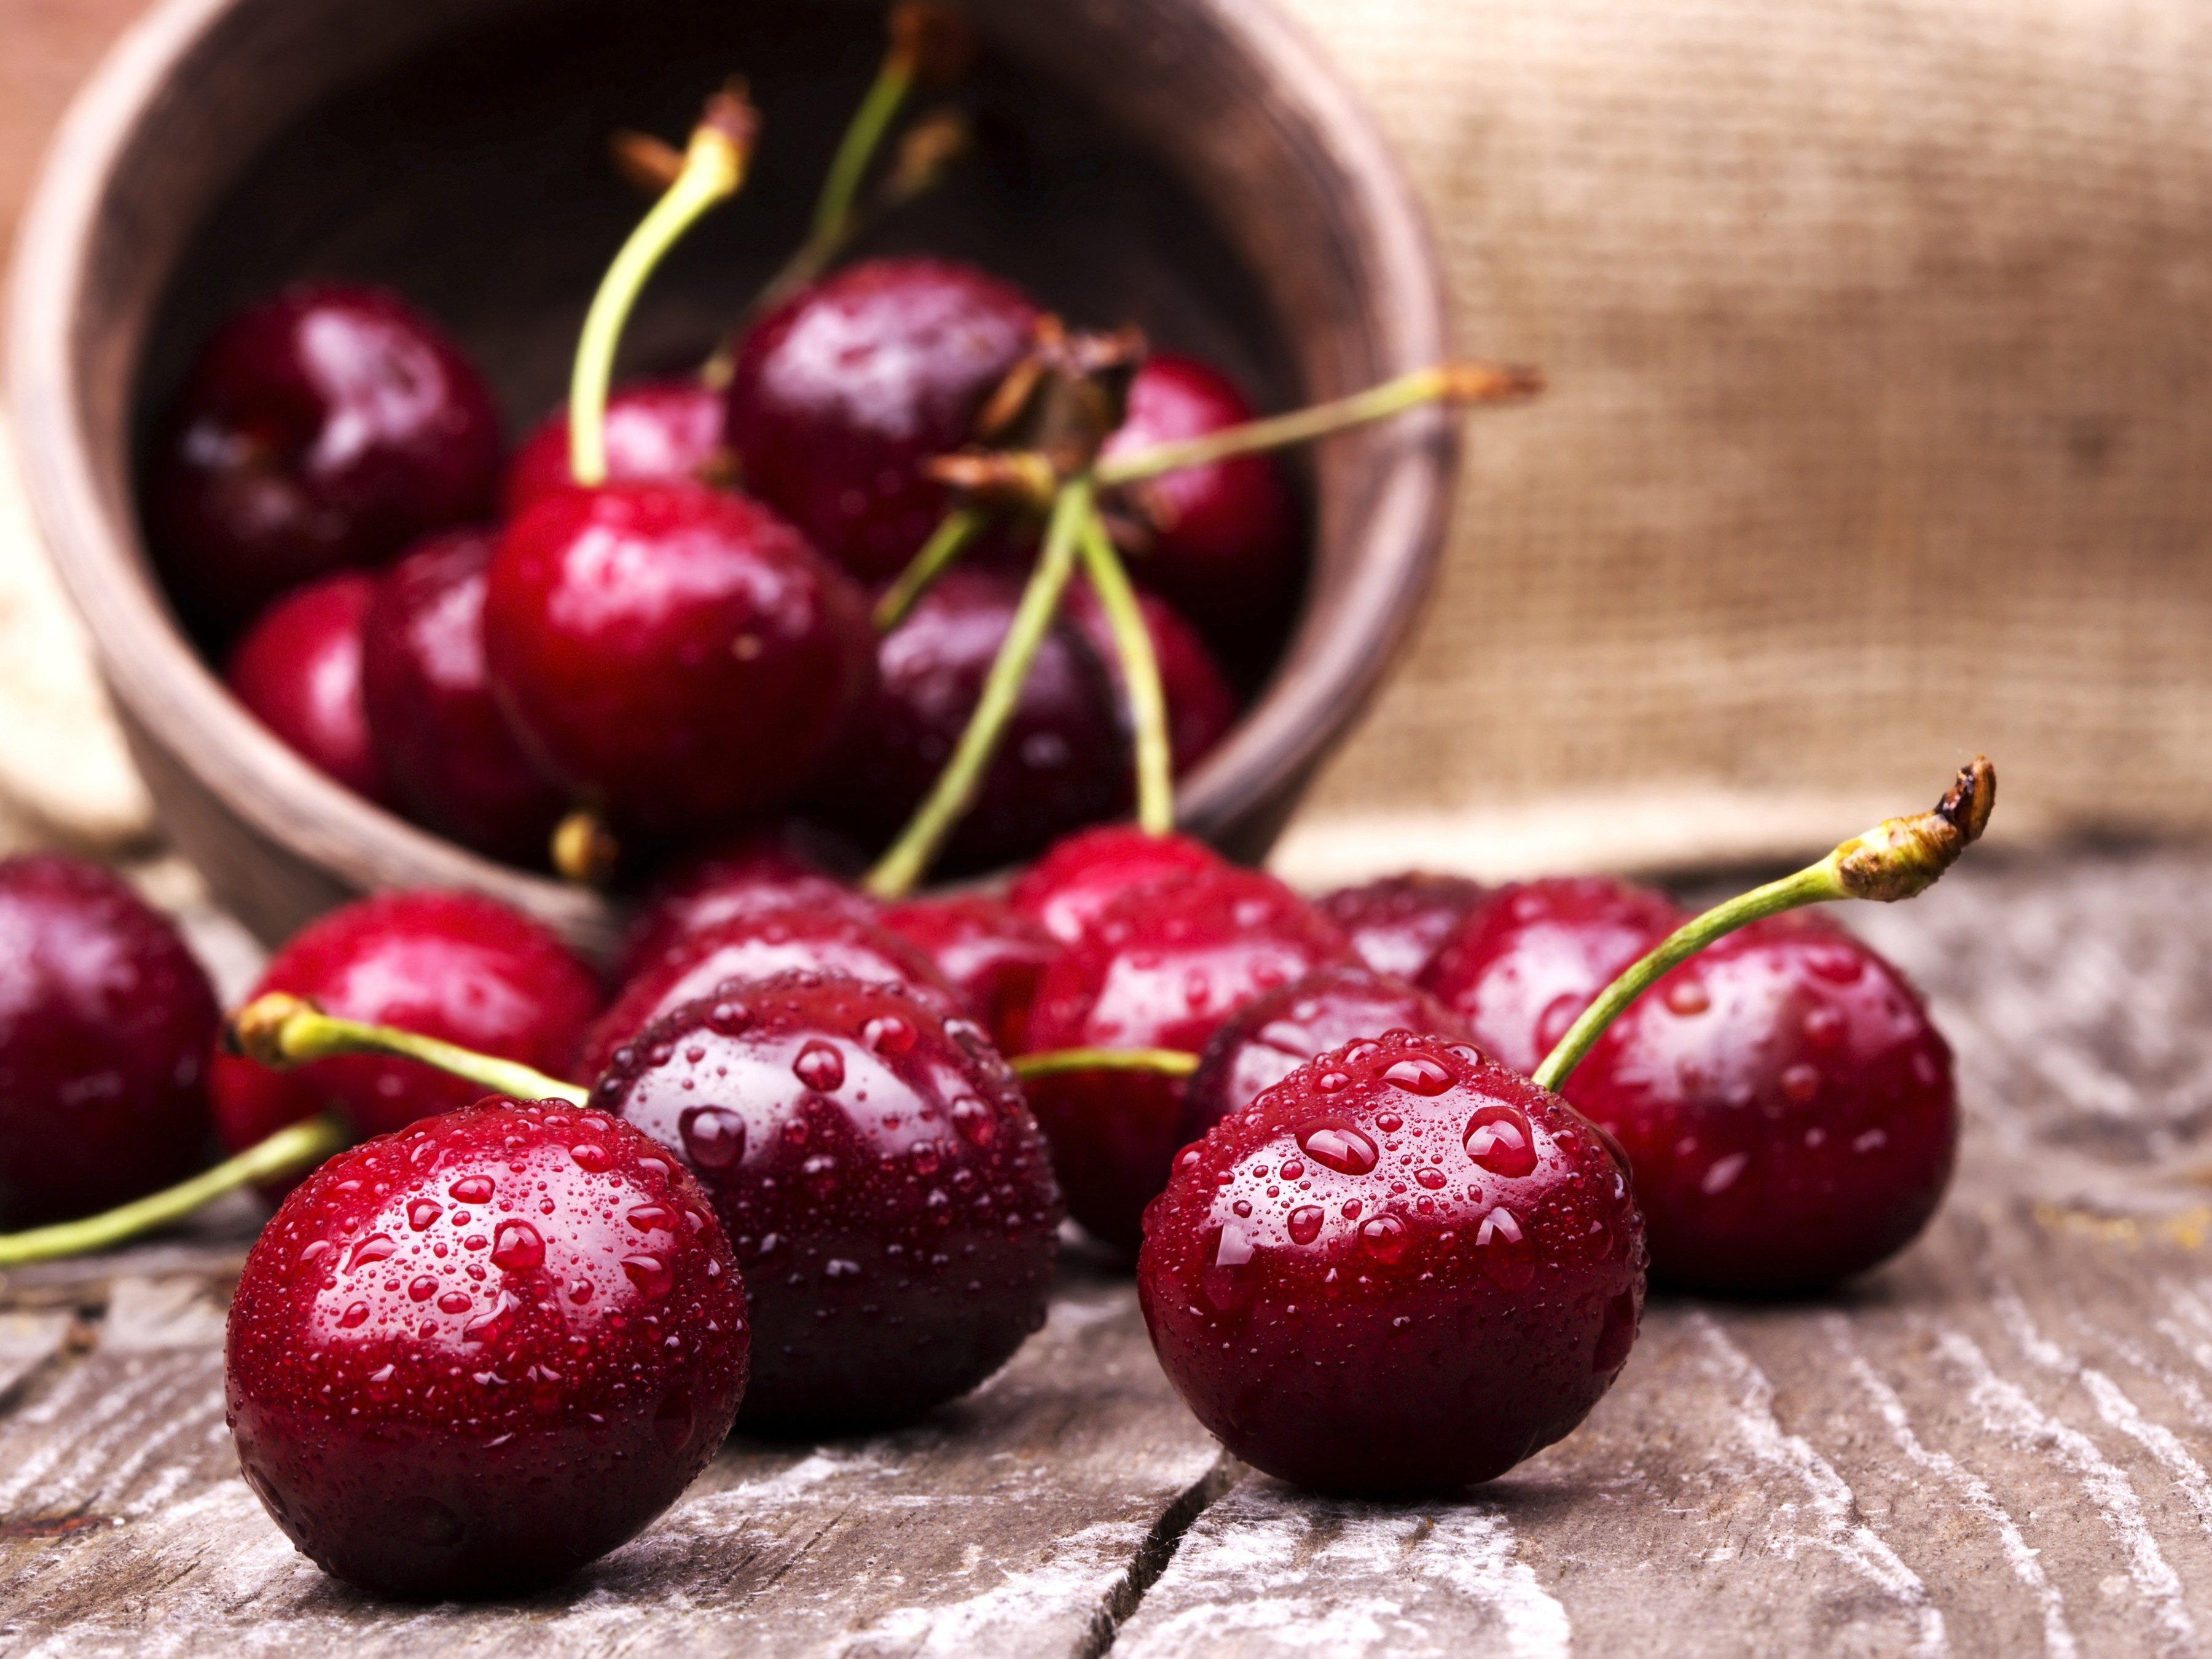 16. Eat 15 cherries a day.